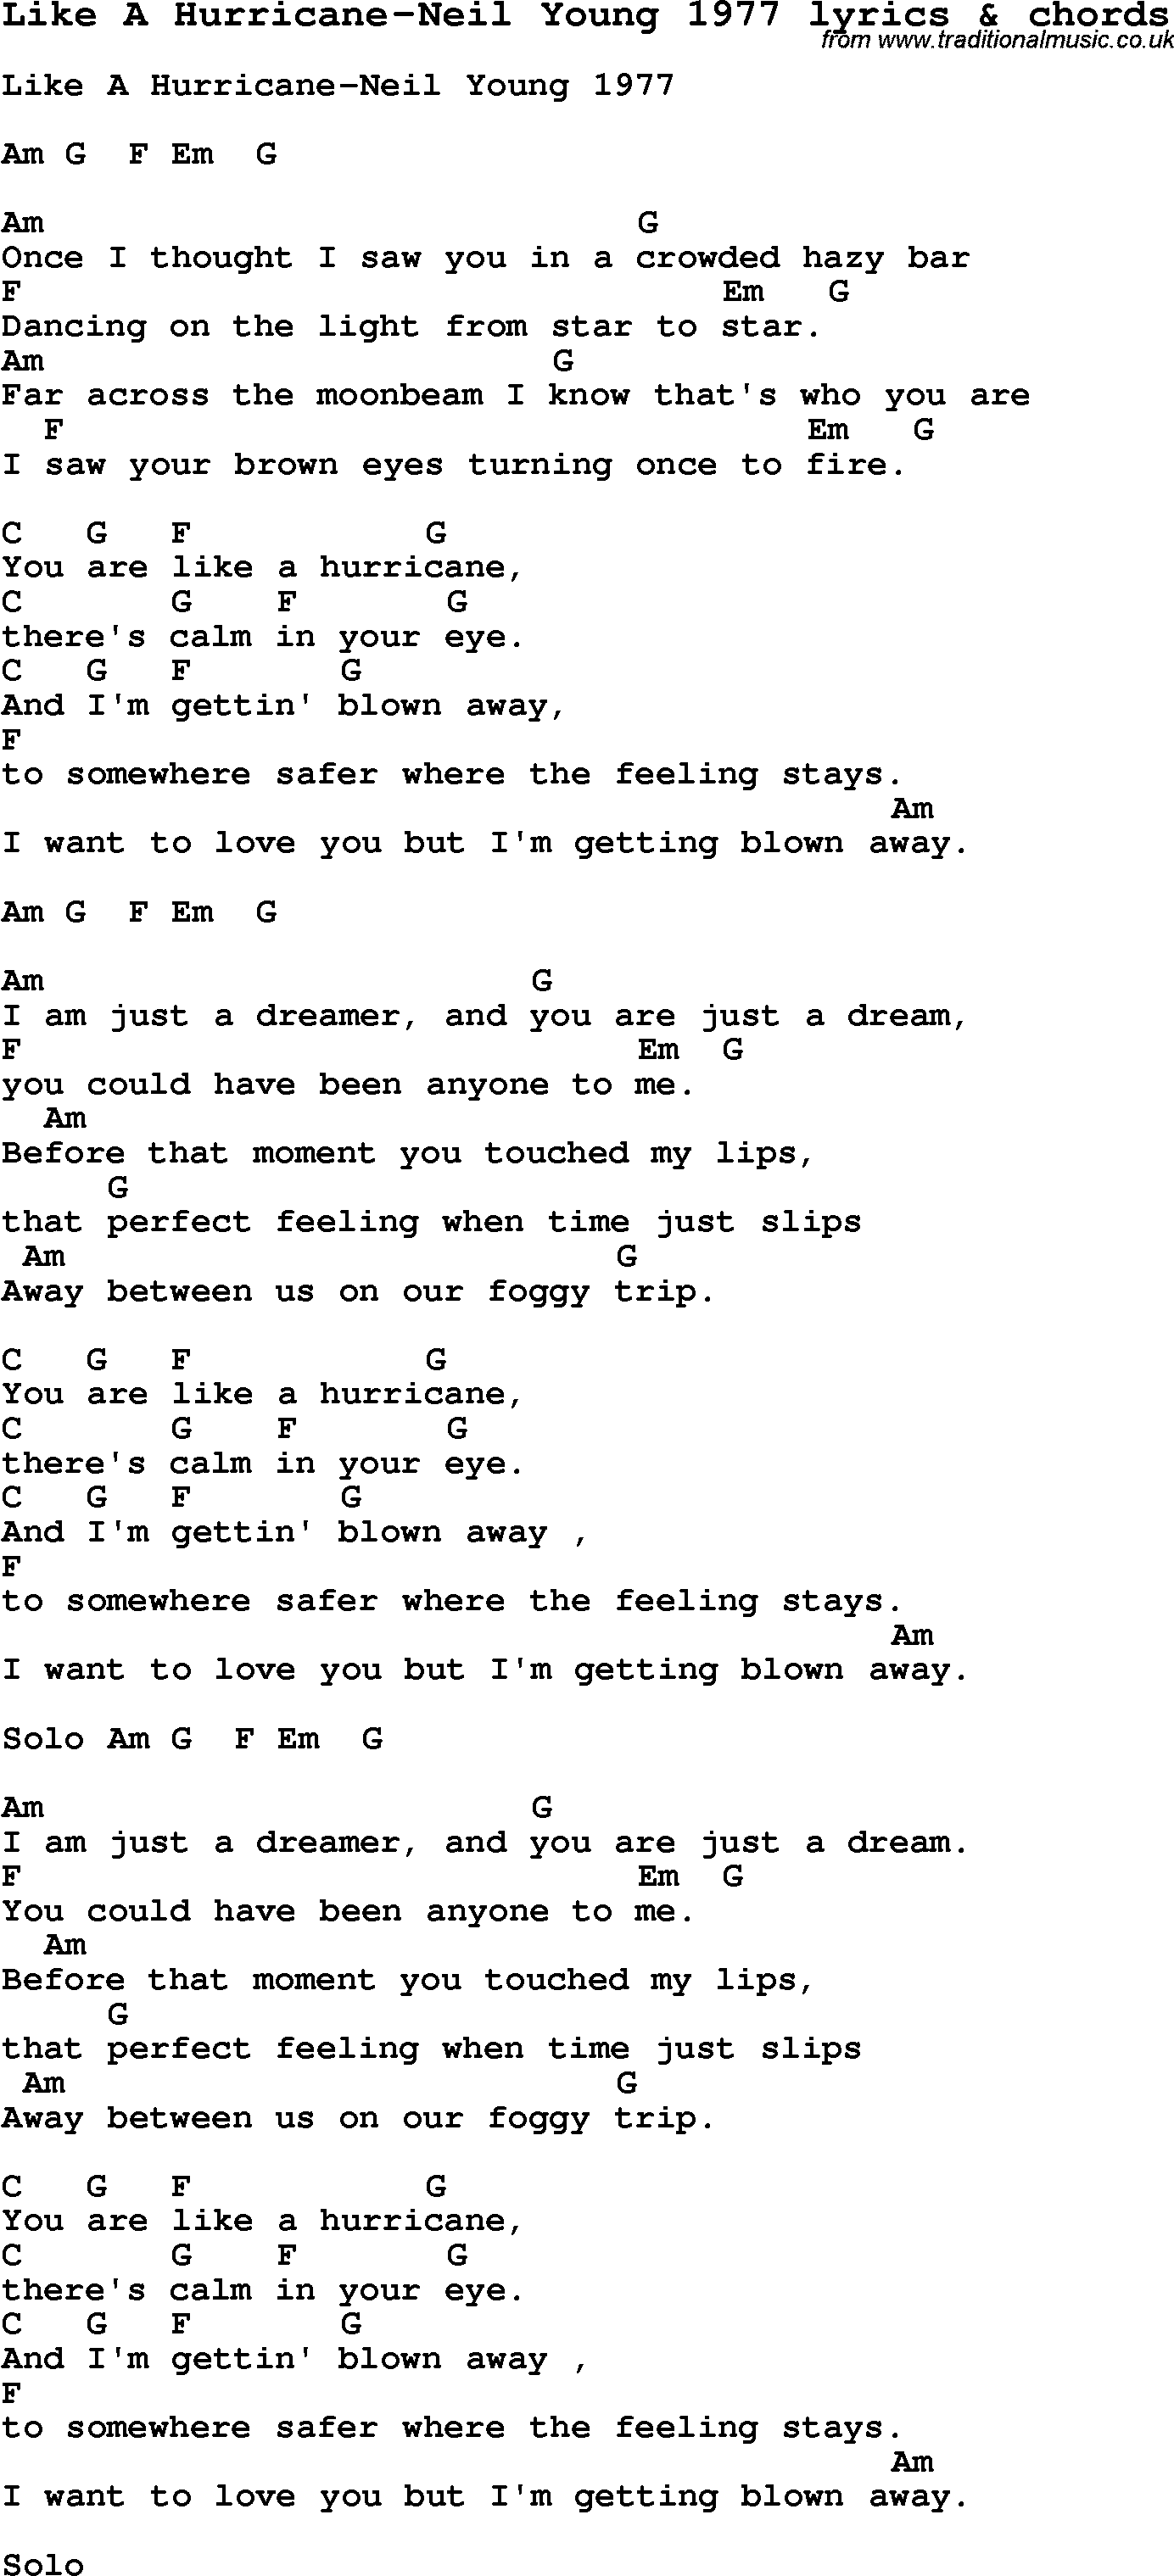 Love Song Lyrics for:Like A Hurricane-Neil Young 1977 with chords.